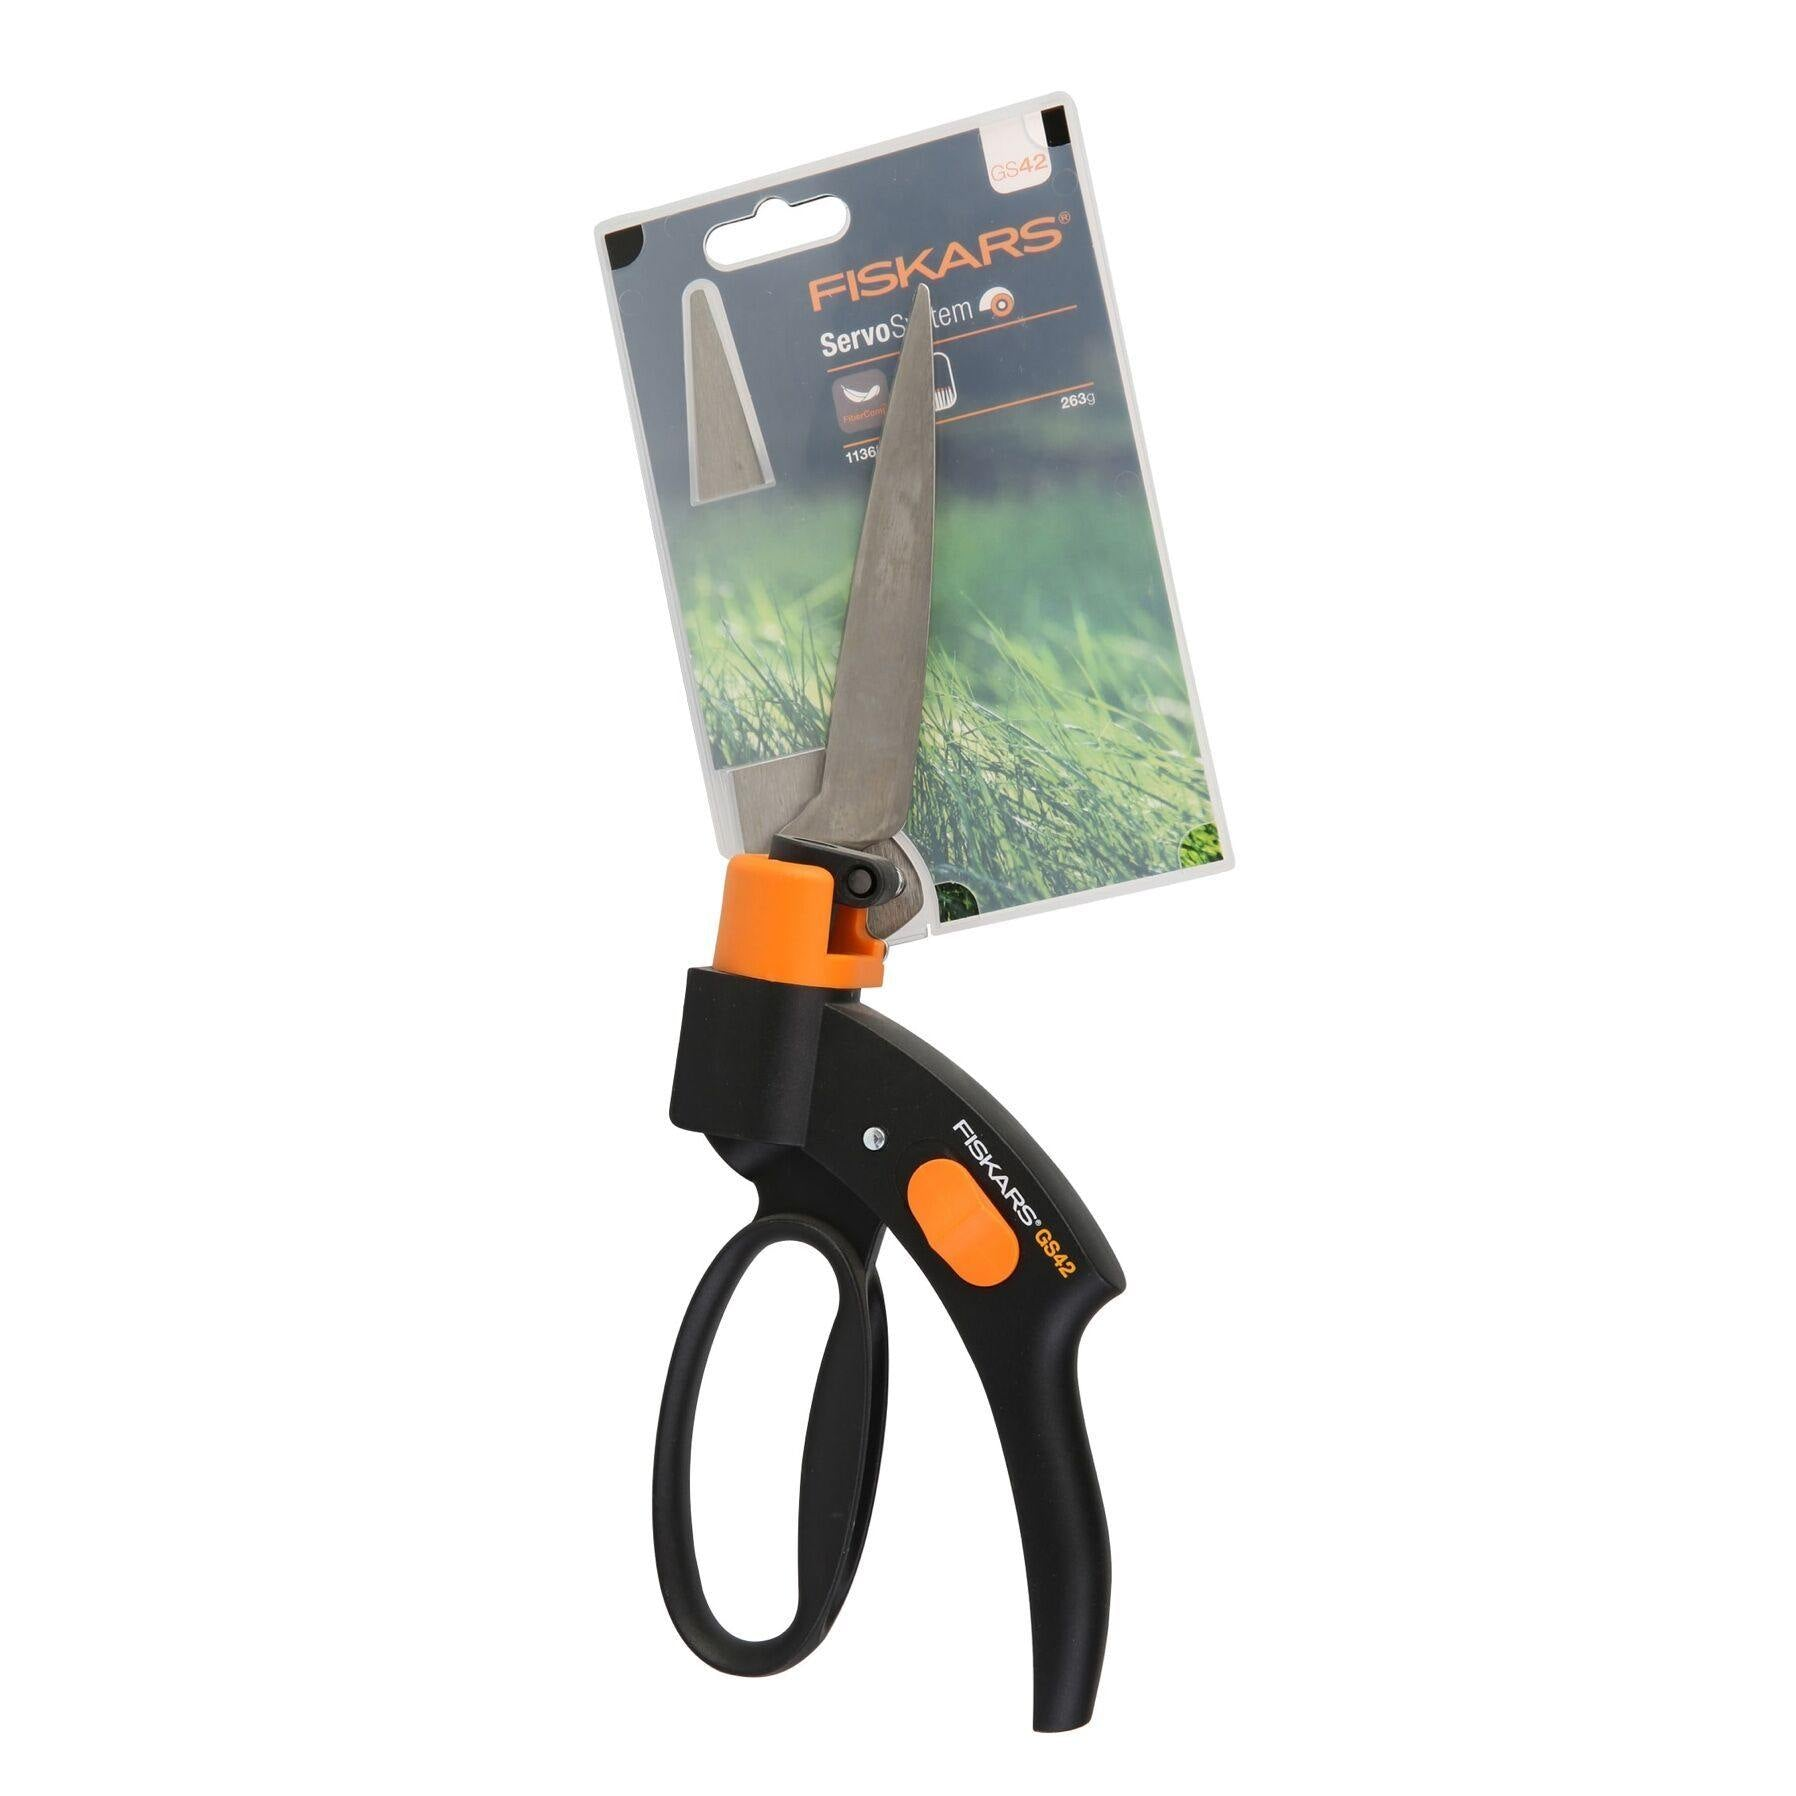 Fiskars Grass Shear Cutters (33 cm)